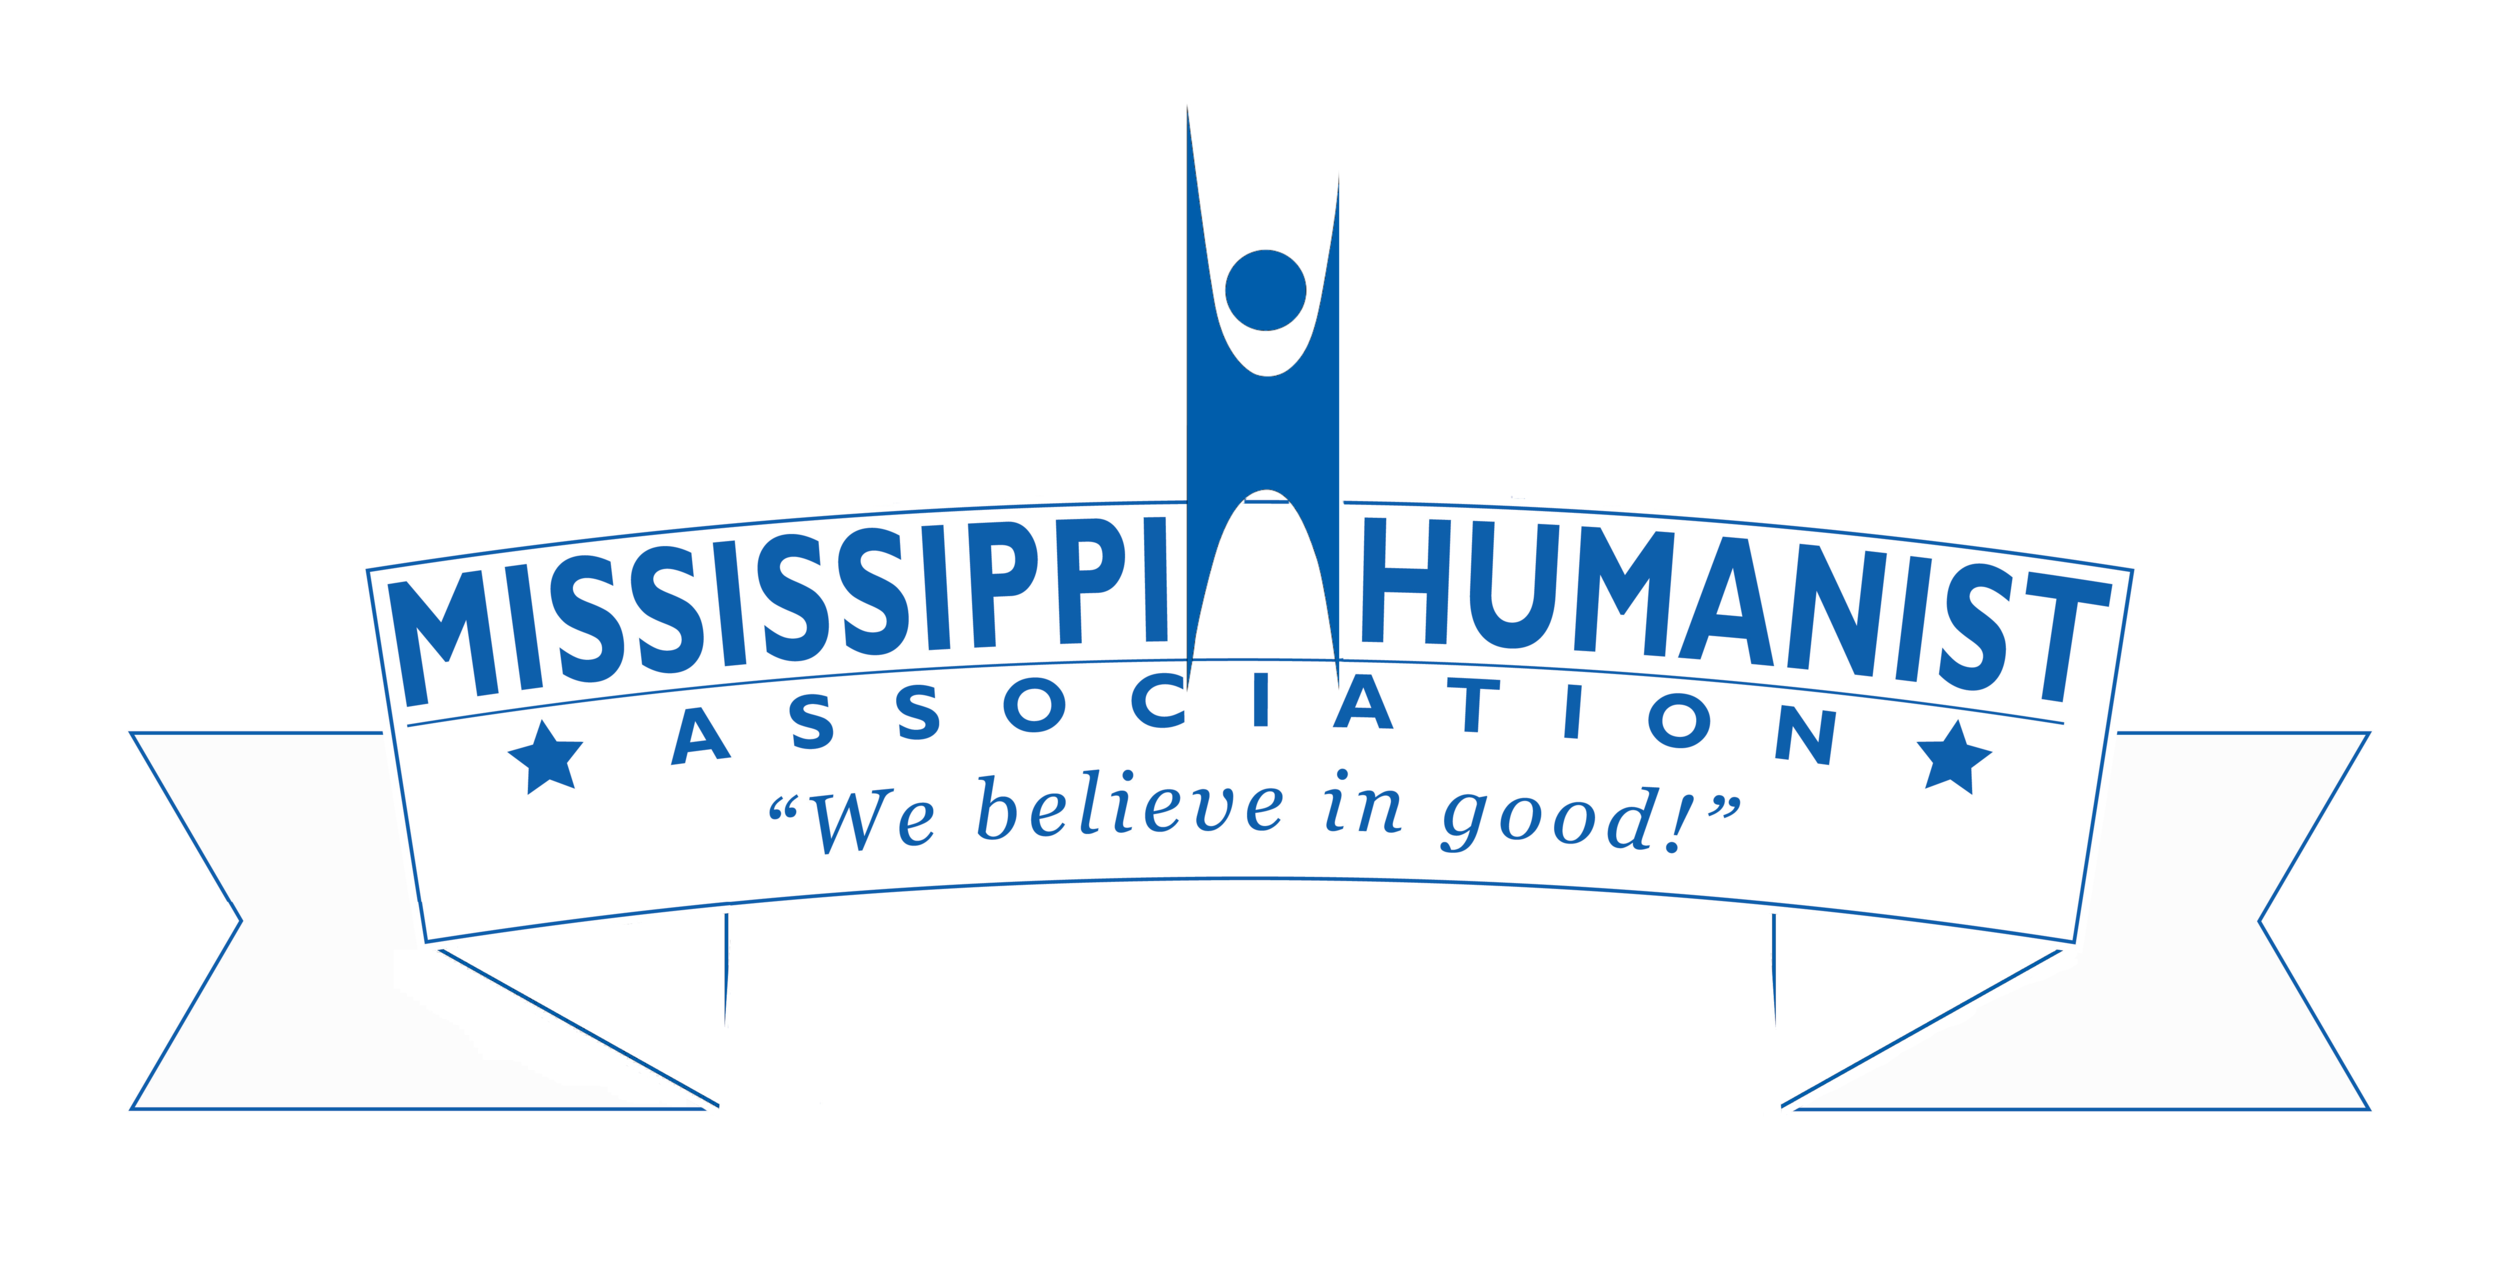 The regular monthly Board of Directors Meeting of the Mississippi Humanist Association (MHA) will be held at the upstairs Community Room of Whole Foods Market, in Jackson, MS.  Members are encouraged to attend, as your ideas and contributions are what drives the activities of the MHA, and the more active, engaged members we have, the more effective the MHA can be in building a strong secular community here in Mississippi. Your continued support is the key to continued progress! Come join us!